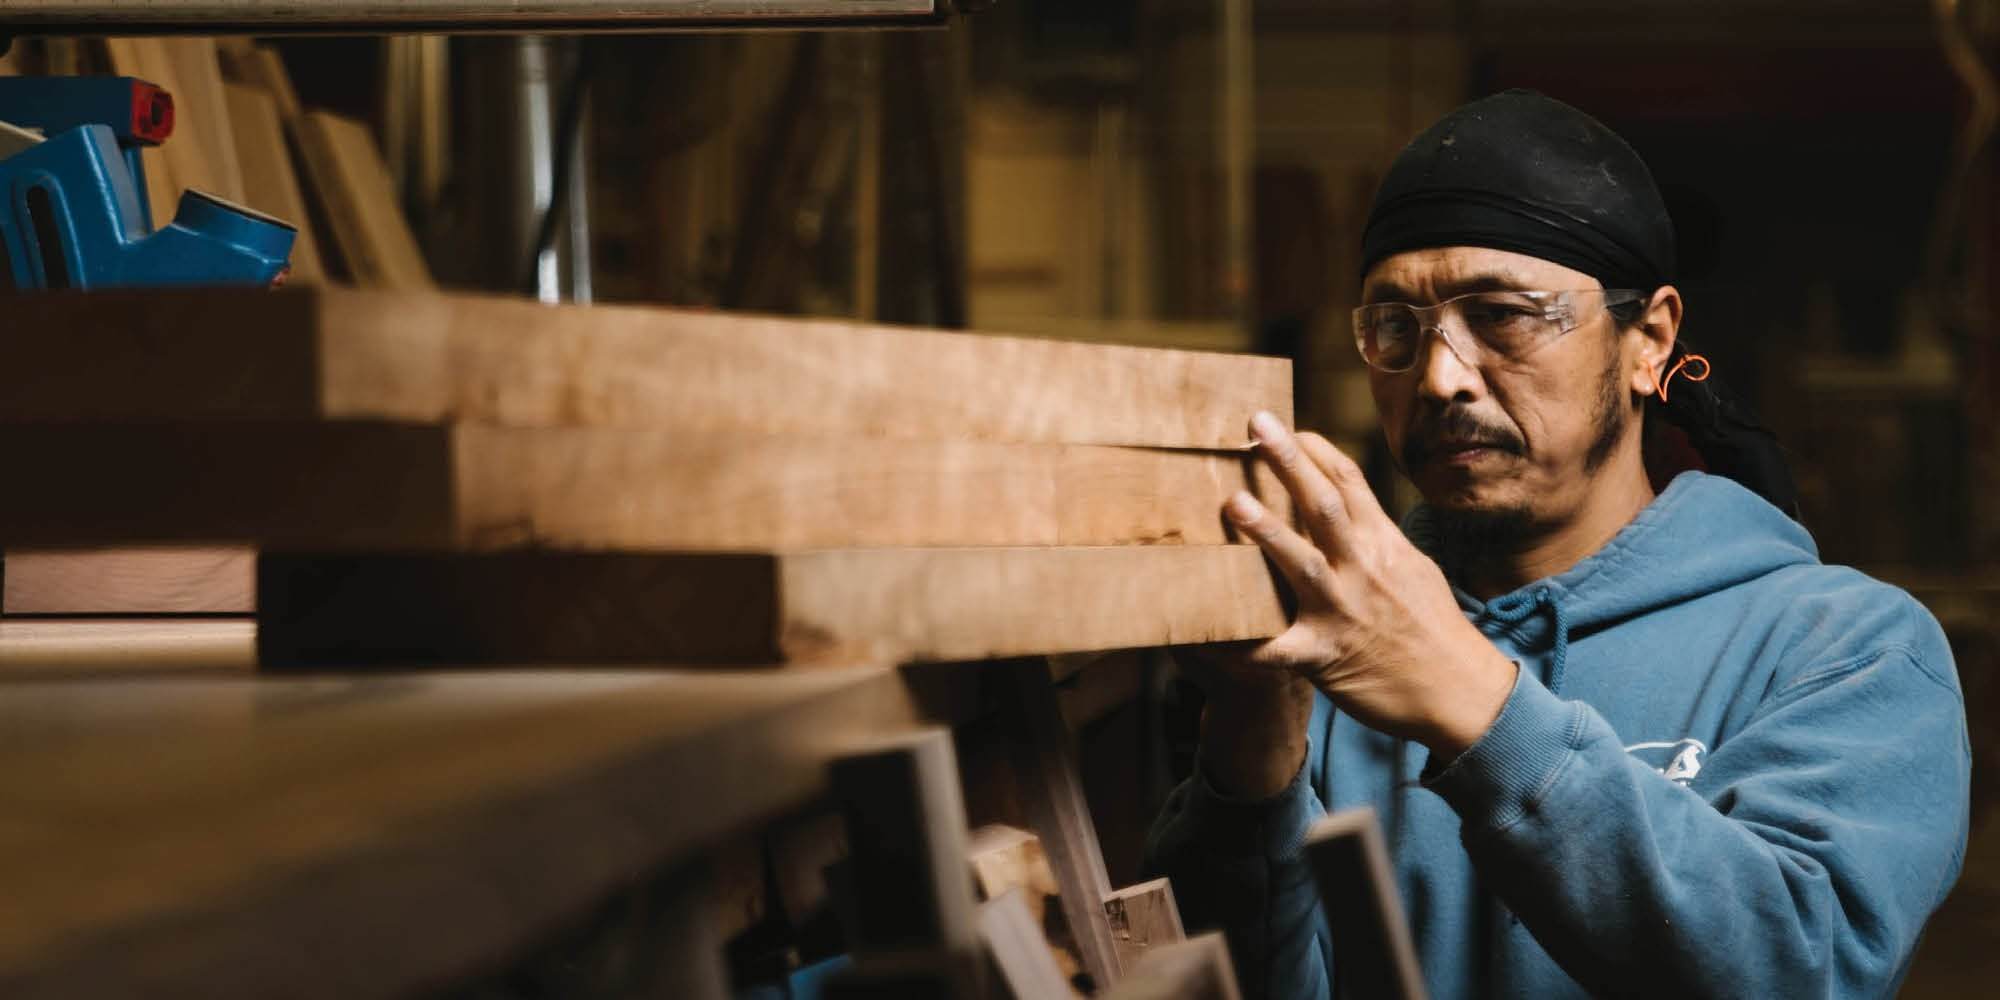 The Joinery crafts person inspecting Western Walnut lumber for the handcrafted furniture process